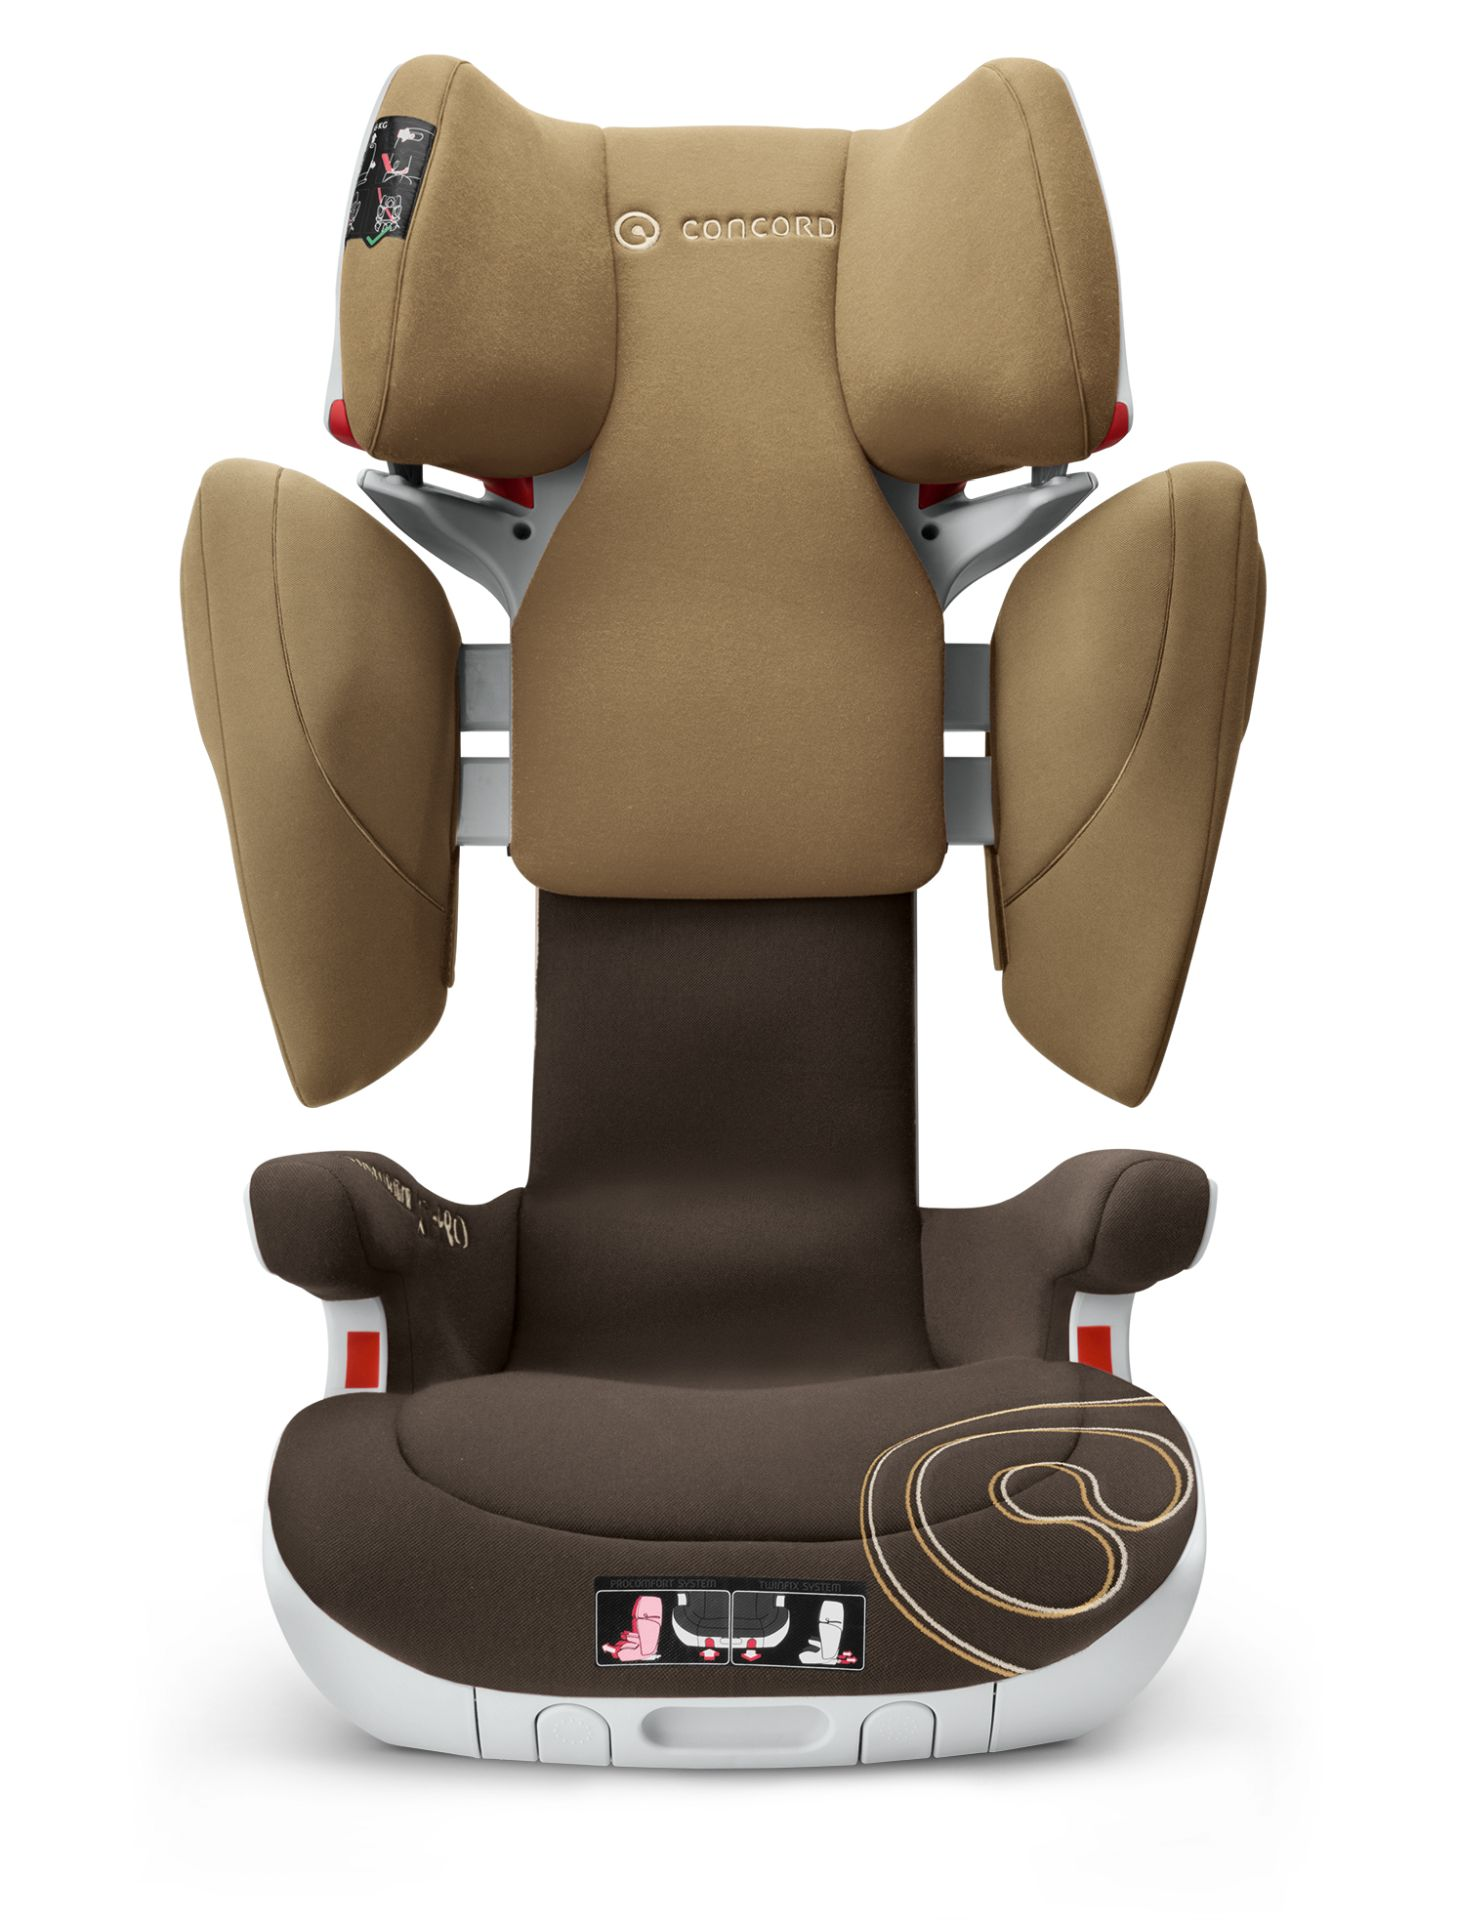 Concord baby car seats: model overview, features and reviews 7